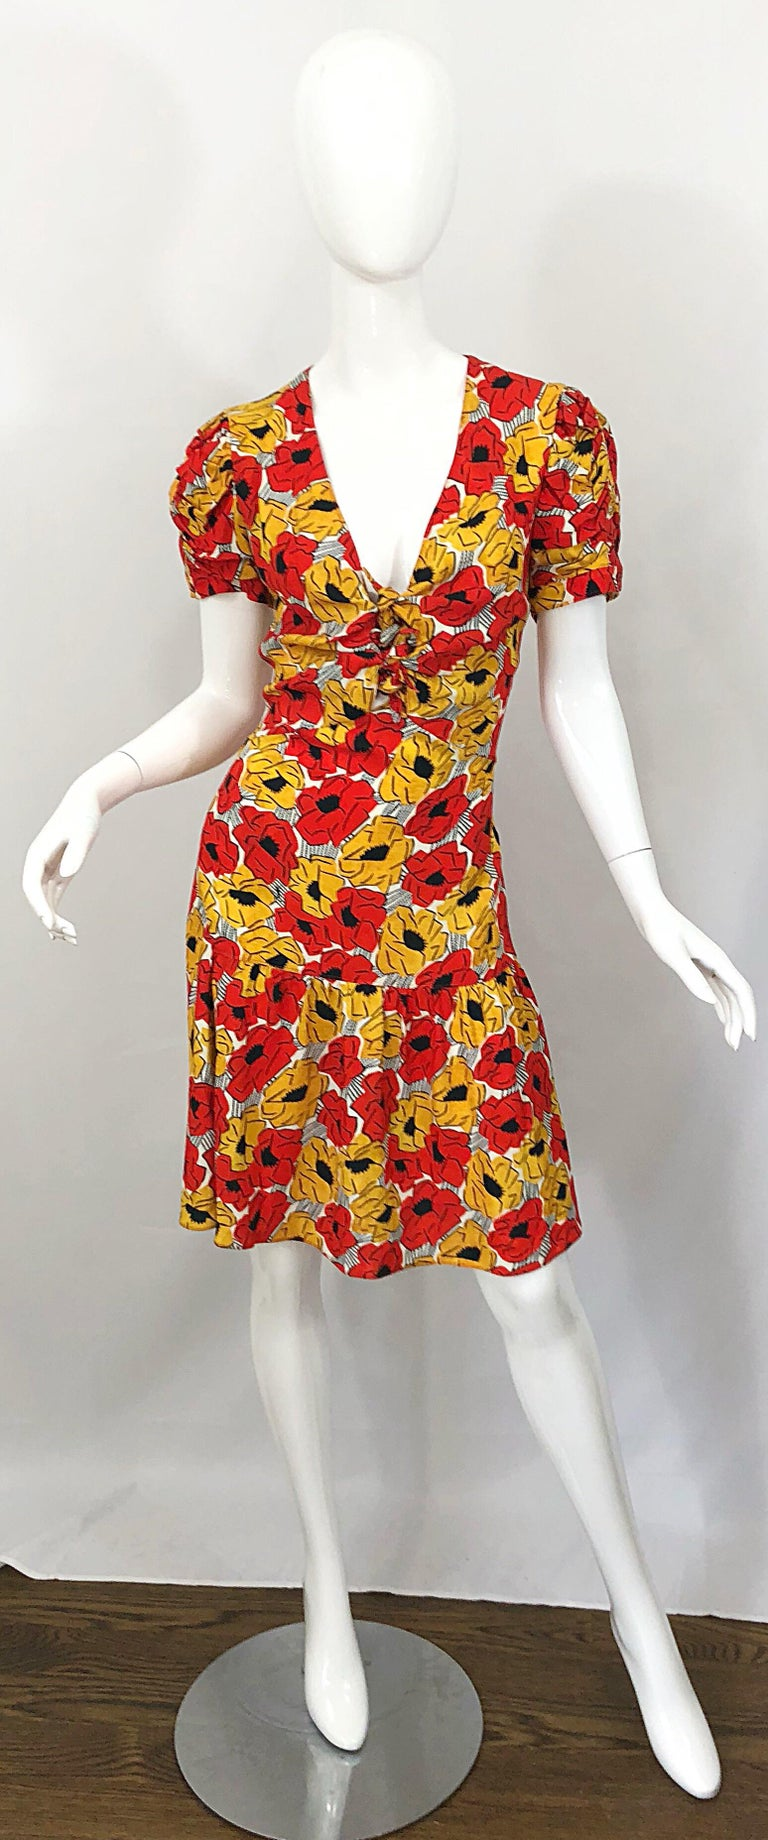 Beautiful YVES SAINT LAURENT red, yellow, black and white poppy print drop waist cut-out dress! Features vibrant colors of red and yellow with black and white throughout. Subtle cut-out details at center bust with ties. Hidden zipper up the side.